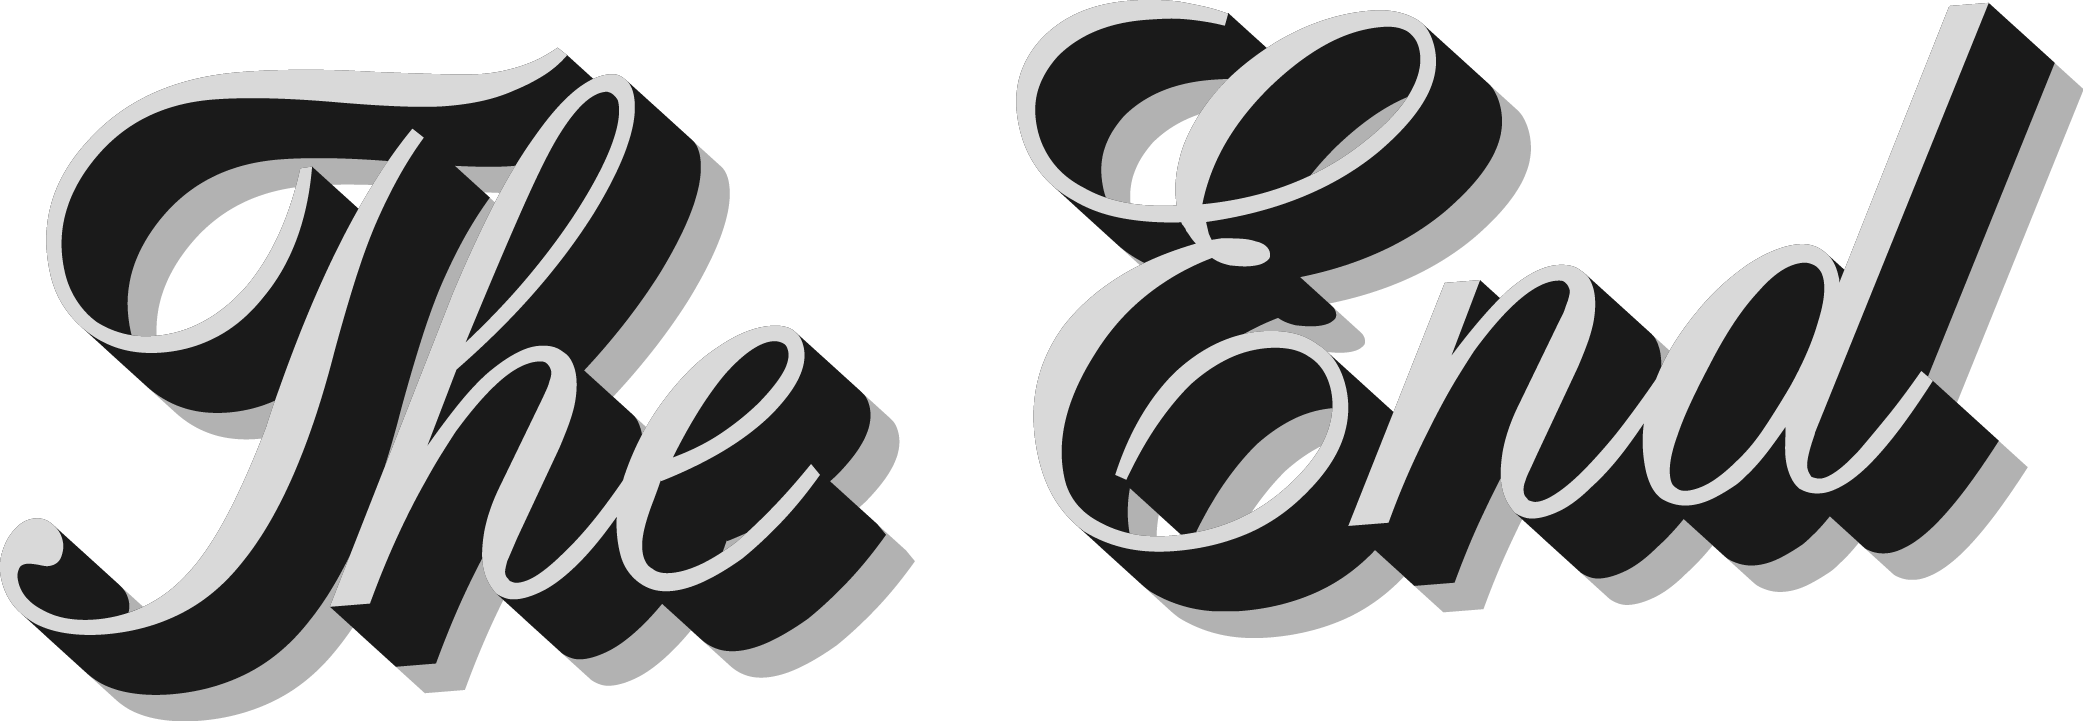 The END Transparent PNG, The End Sign images - Free Transparent PNG Logos